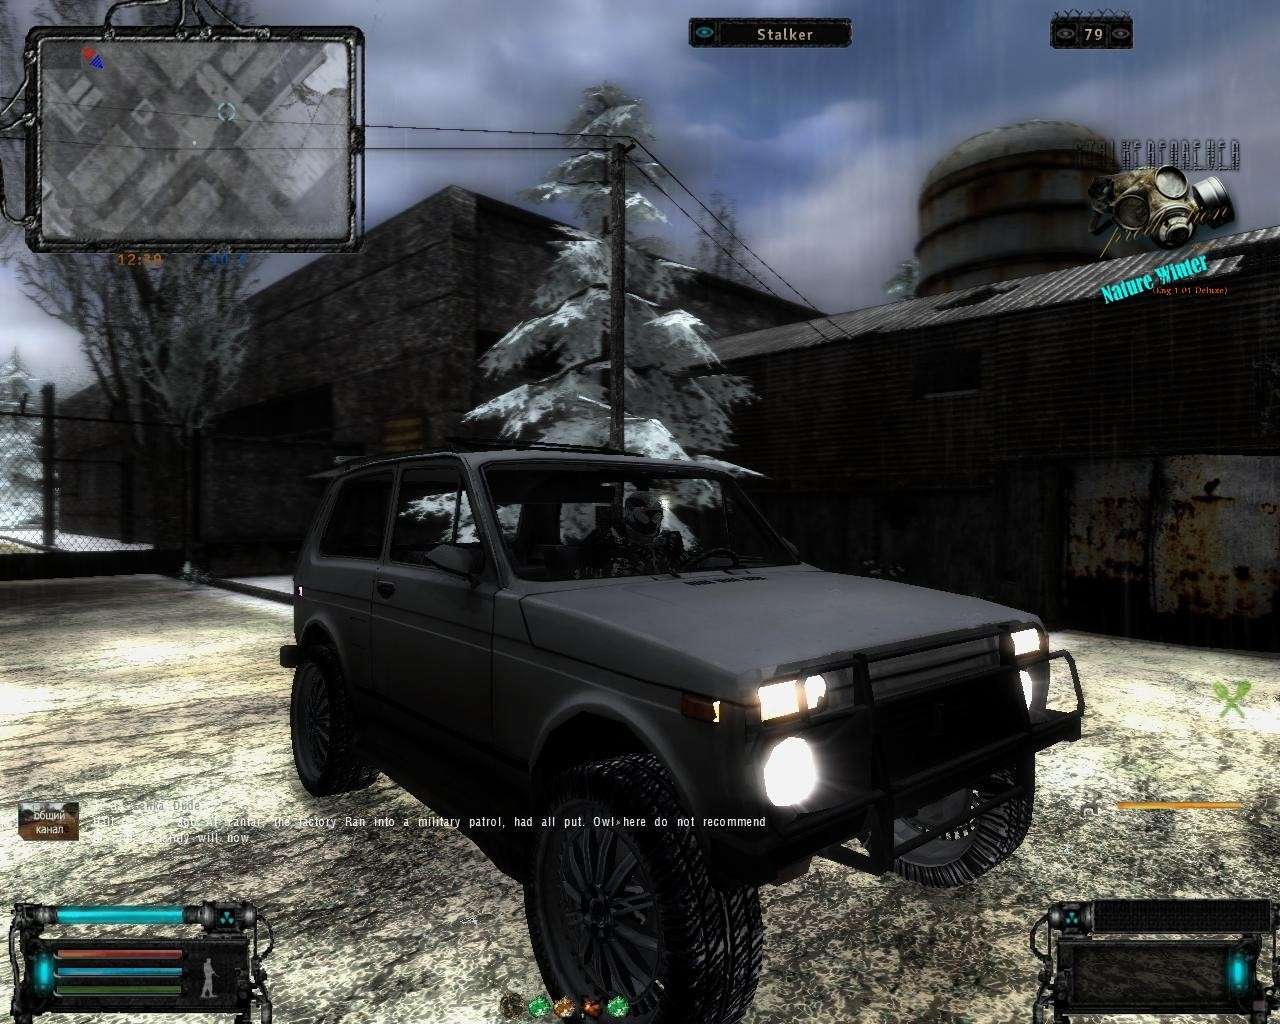 Nature Winter 2.3 Black Edition (eng 1.01 Deluxe) Images Gallery! Serie:1# Ss_bo109